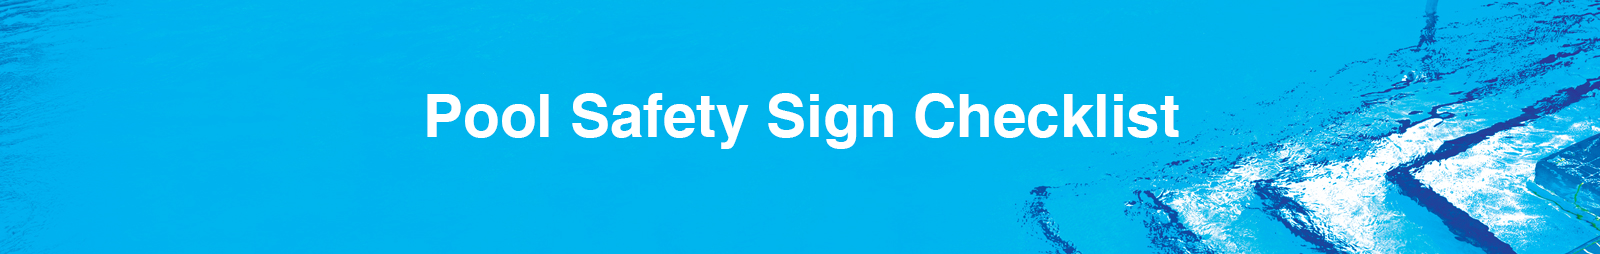 Pool Safety Sign Checklist Header Image